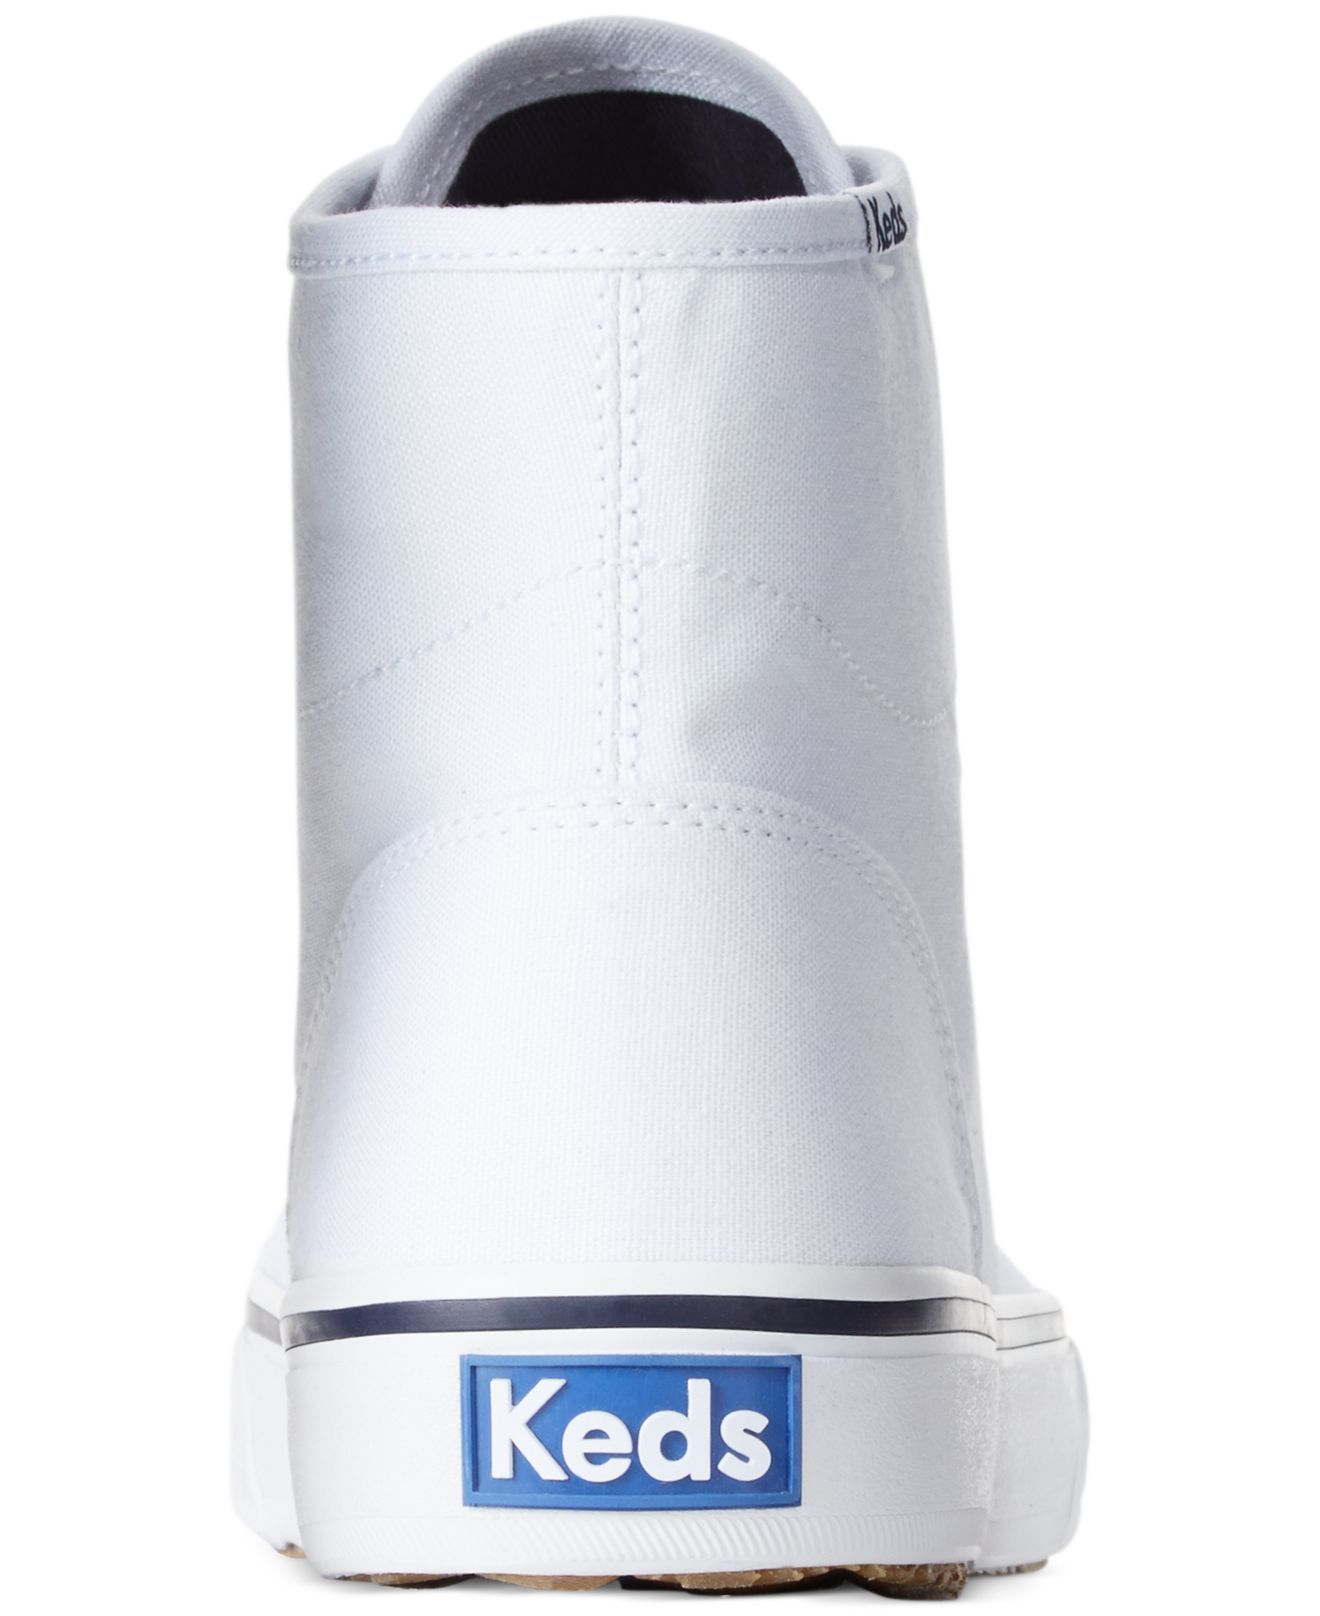 keds double up hi top sneakers